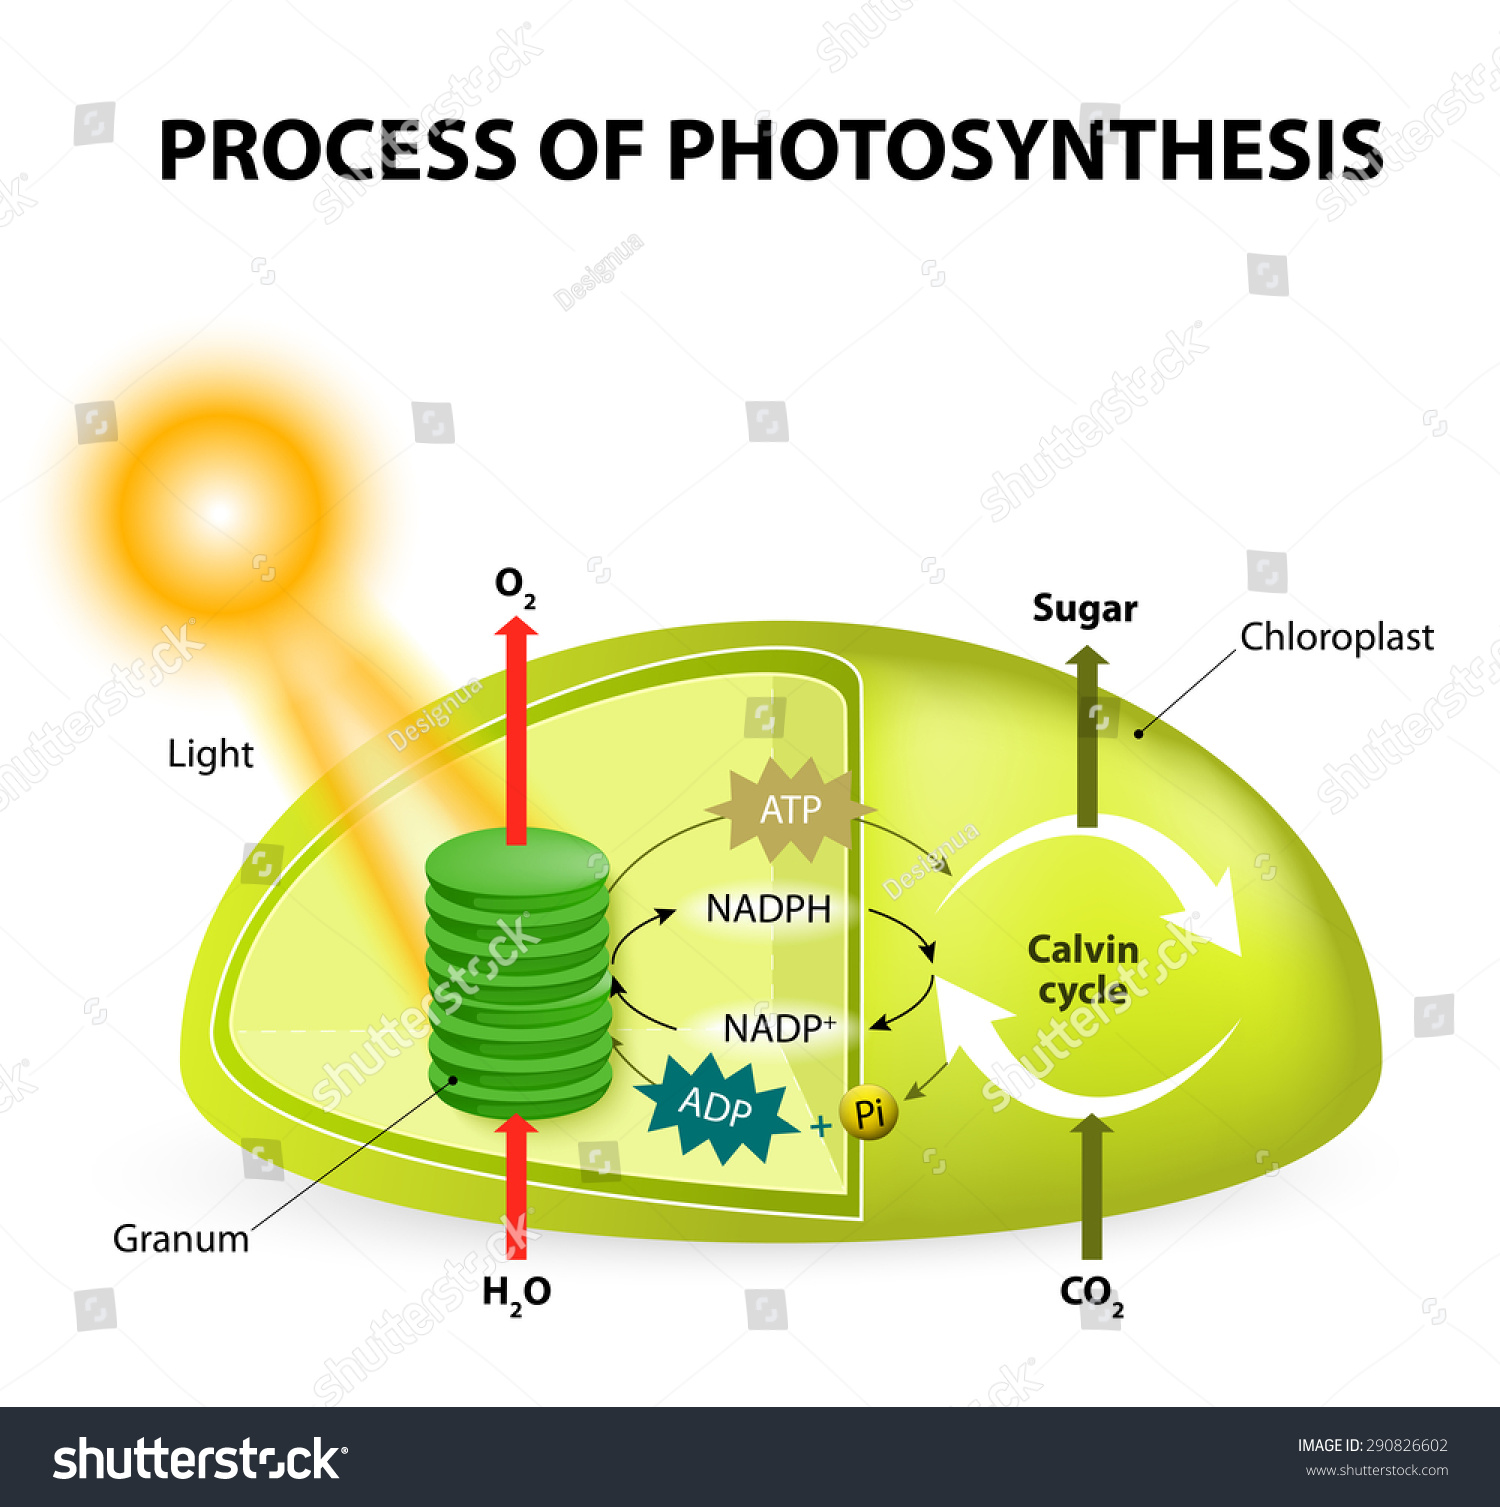 photosynthesis z scheme diagram funny flow process showing light reactions